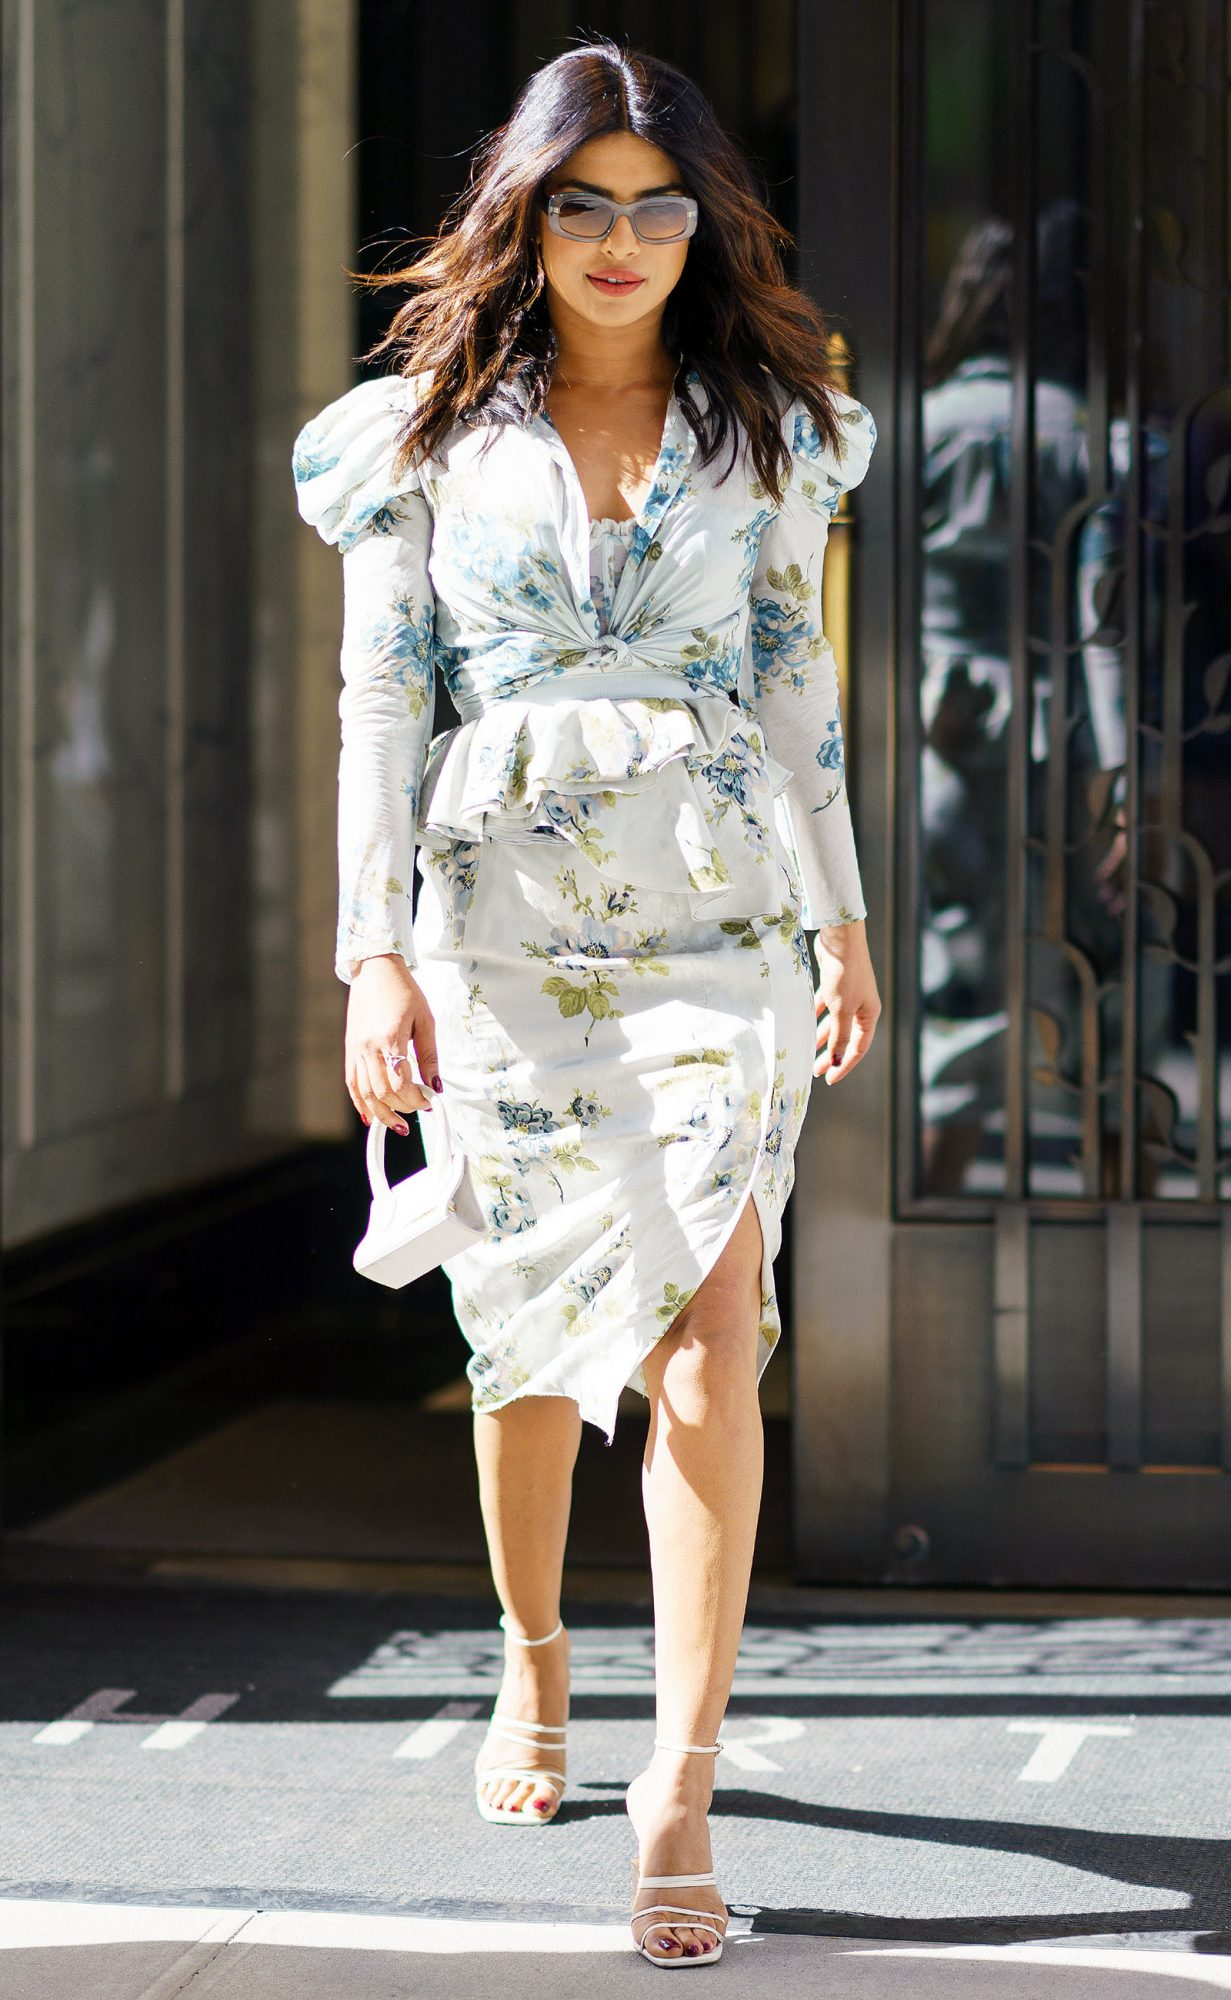 EXCLUSIVE: Priyanka Chopra wears a nice floral spring dress paired with a min tote when out and about in New York